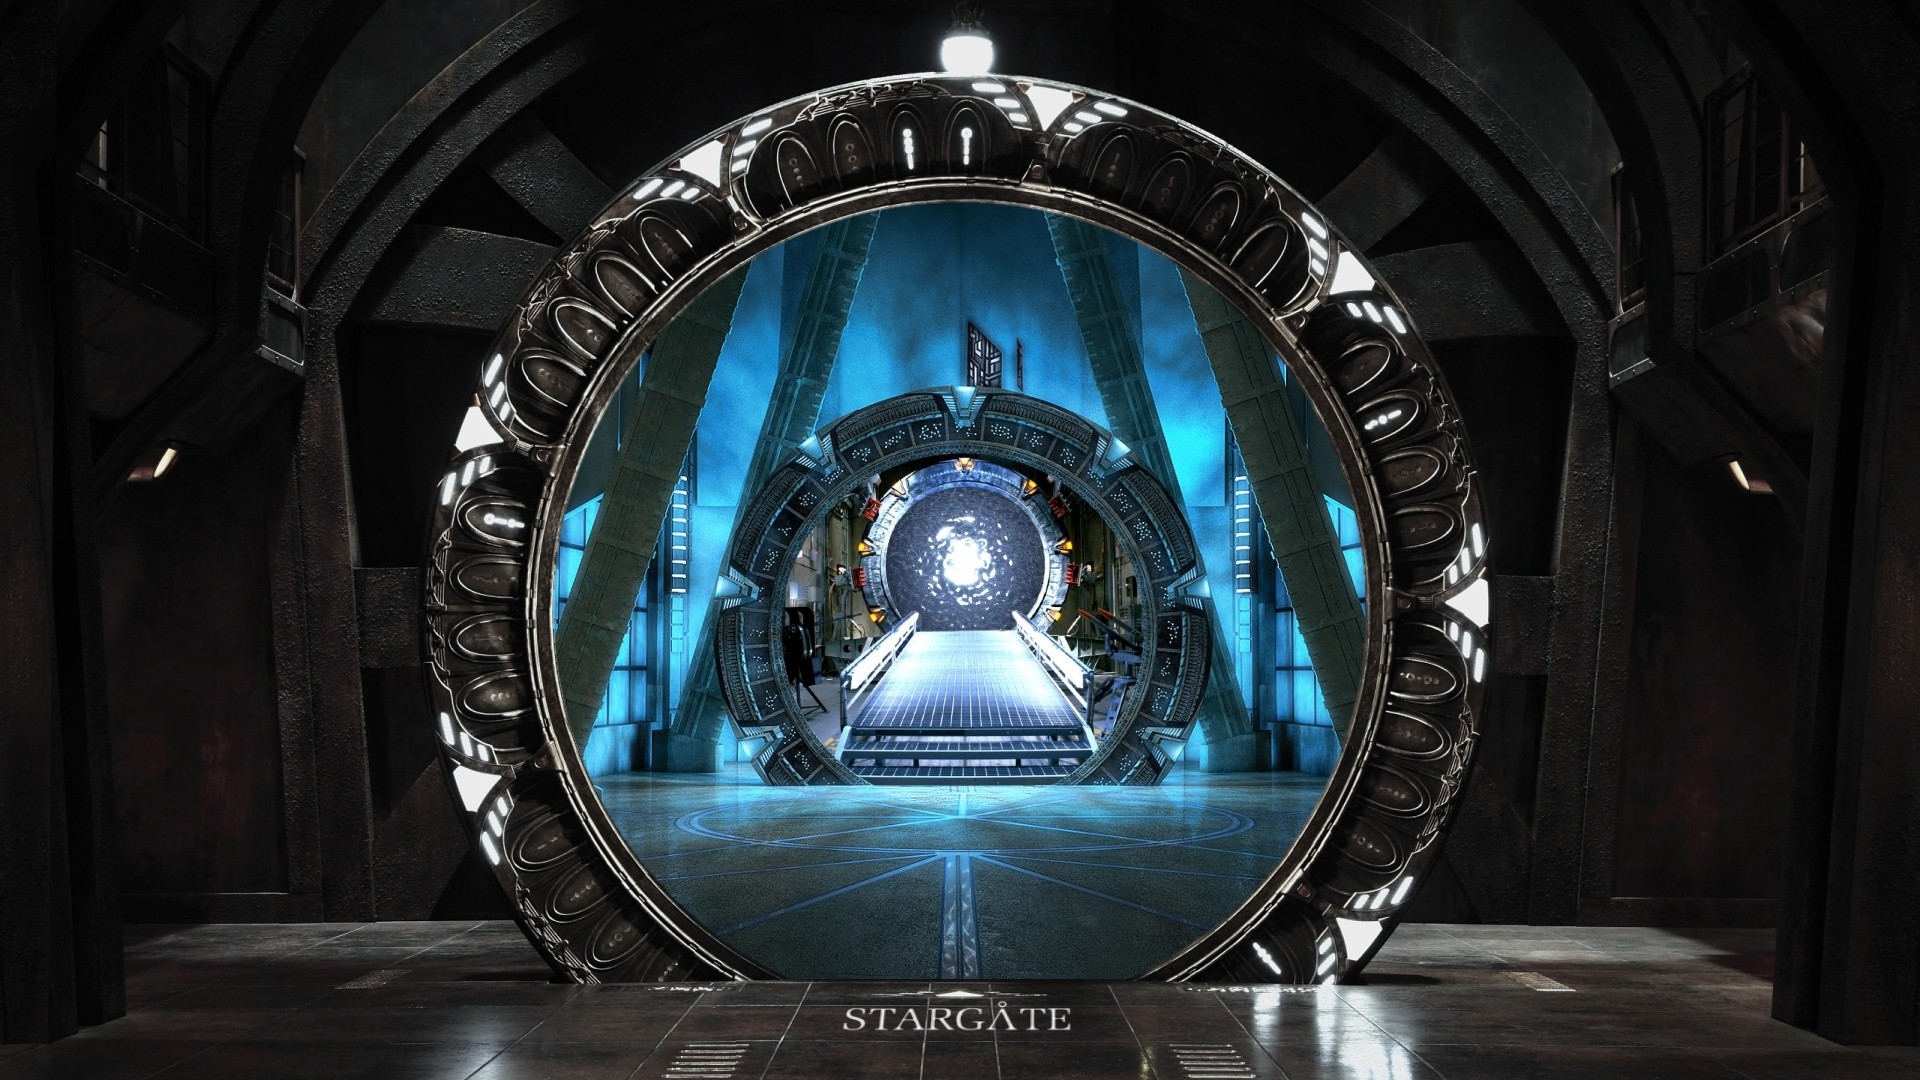 Stargate universe full hd wallpaper and background image for Where can i purchase wallpaper